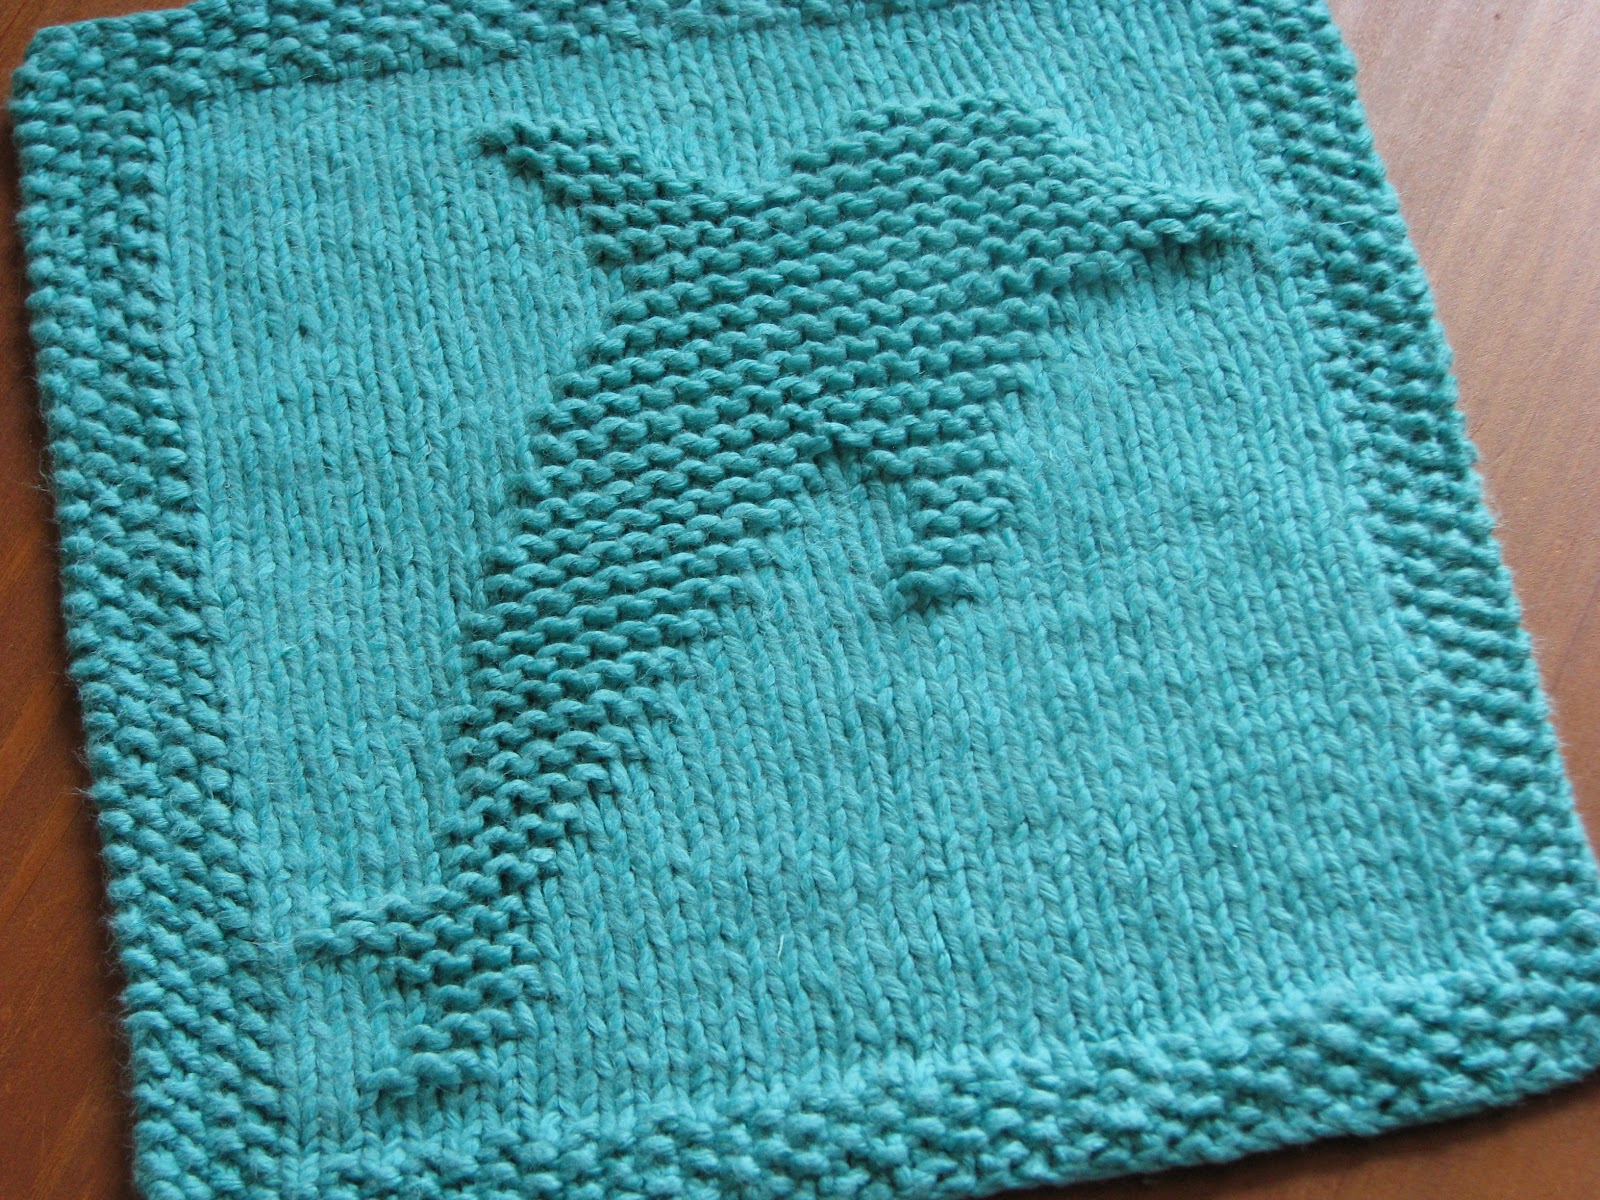 Dishcloth Knitting Pattern : One Crafty Mama: Dolphin Dishcloth